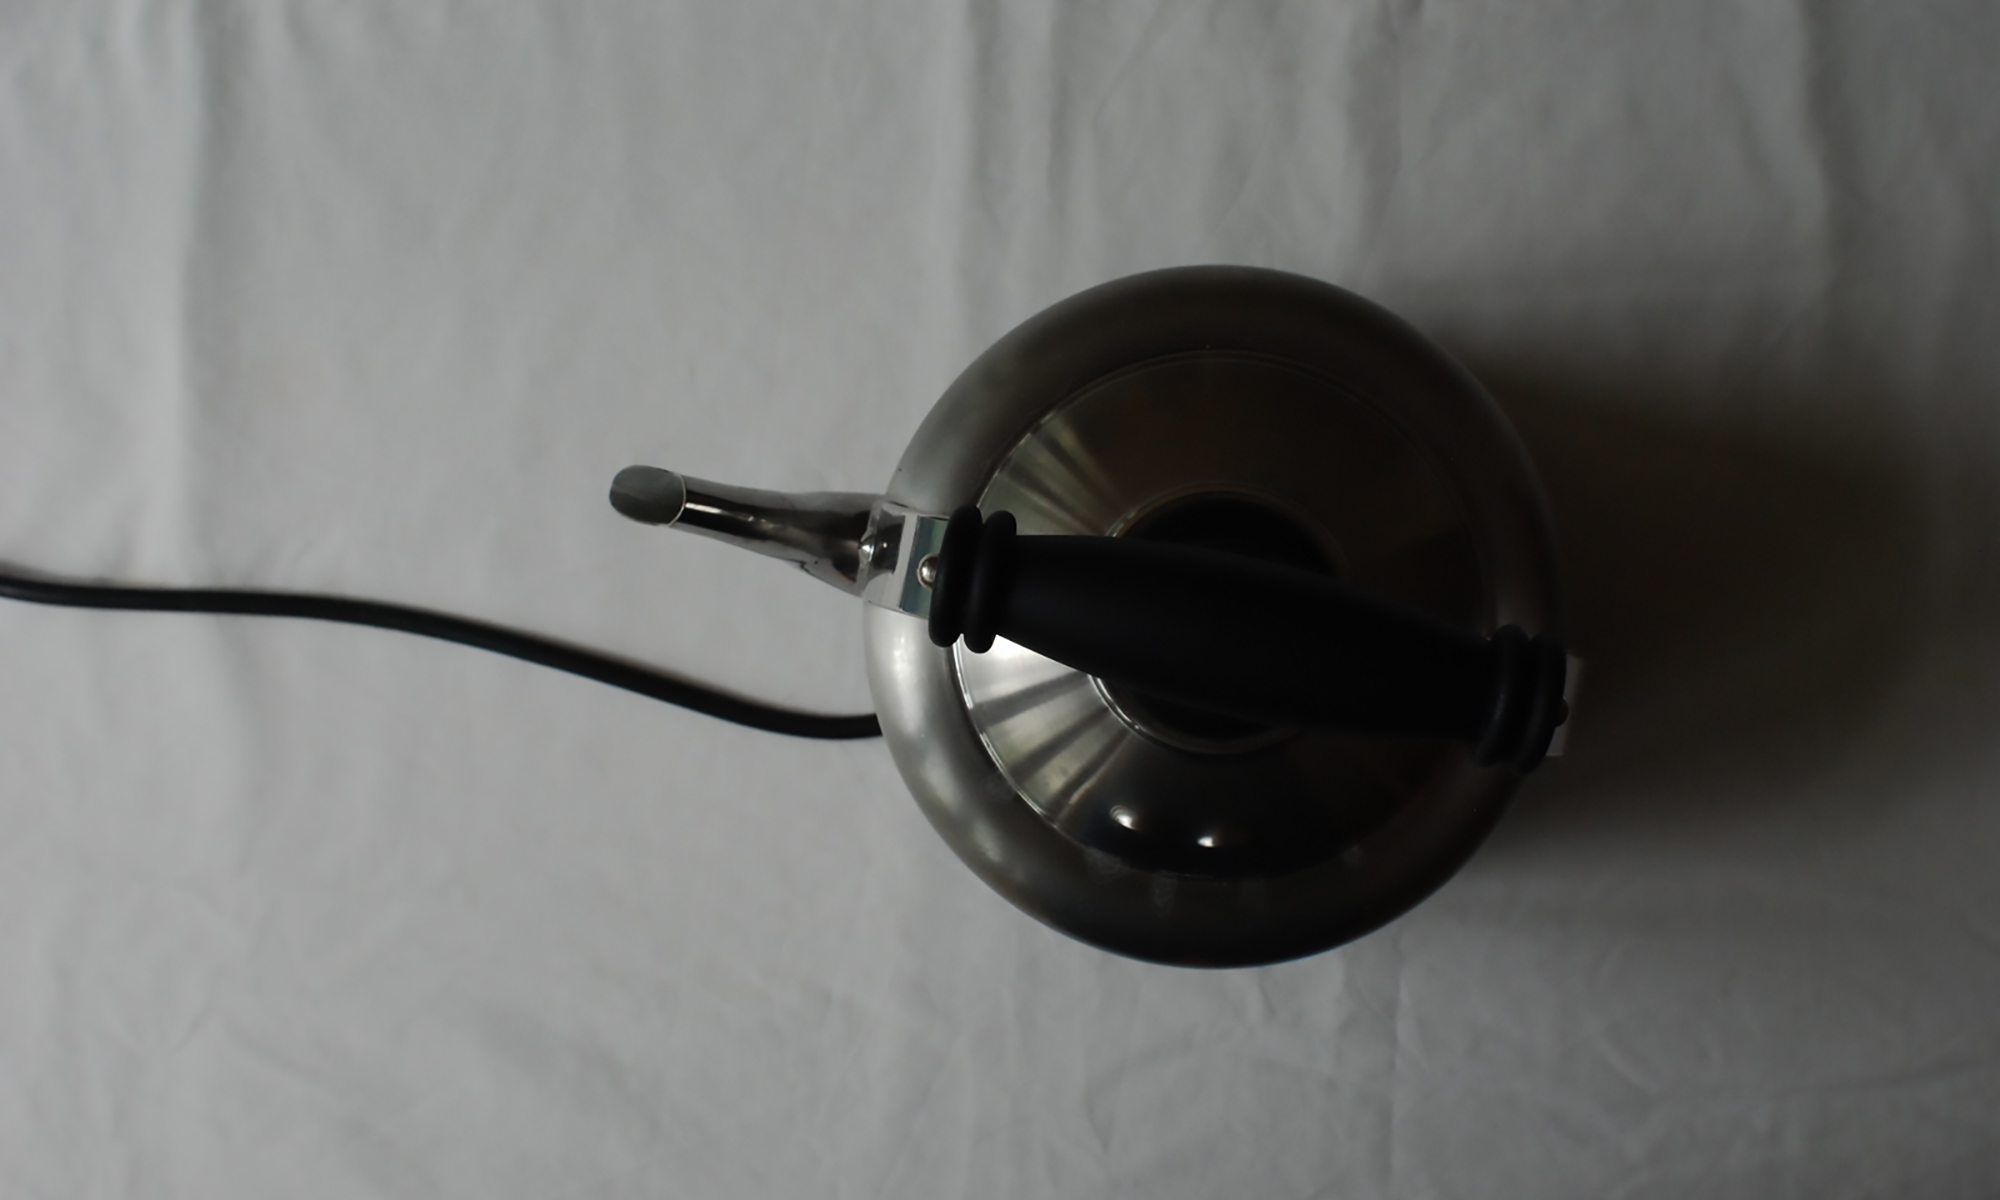 Plastic-free stainless steel kettle - non-plastic - well being